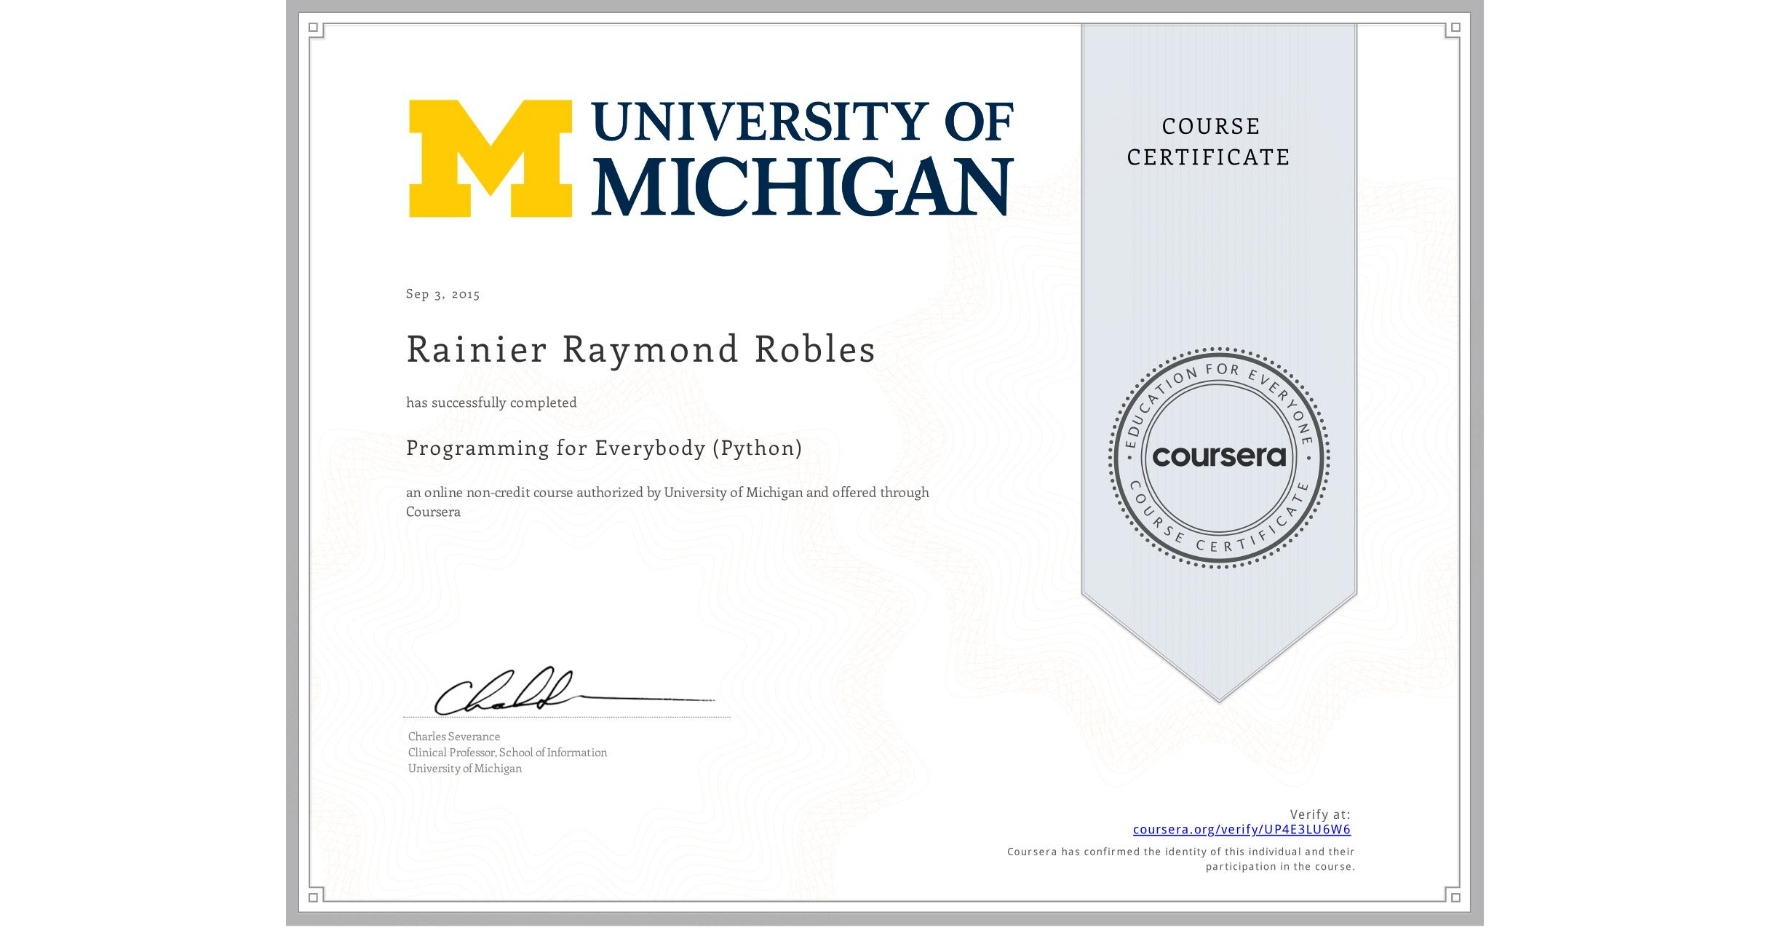 View certificate for Rainier Raymond  Robles, Programming for Everybody (Python), an online non-credit course authorized by University of Michigan and offered through Coursera